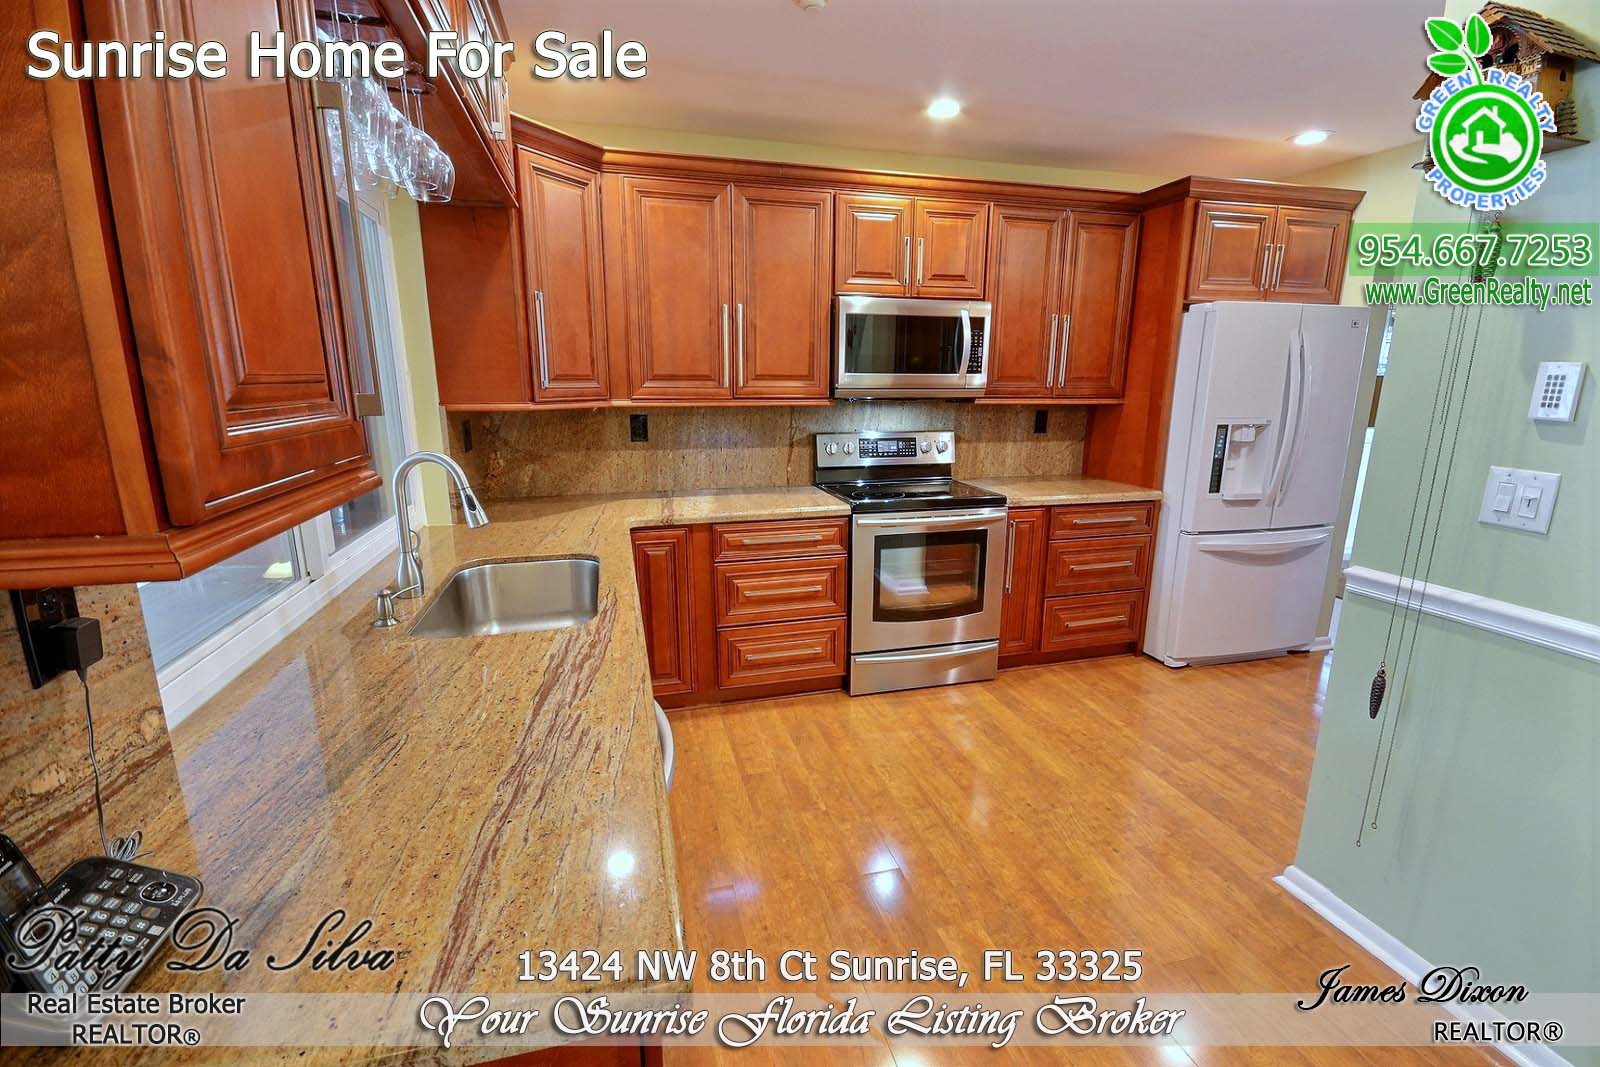 5 Homes For Sale in Sunrise Florida (3)